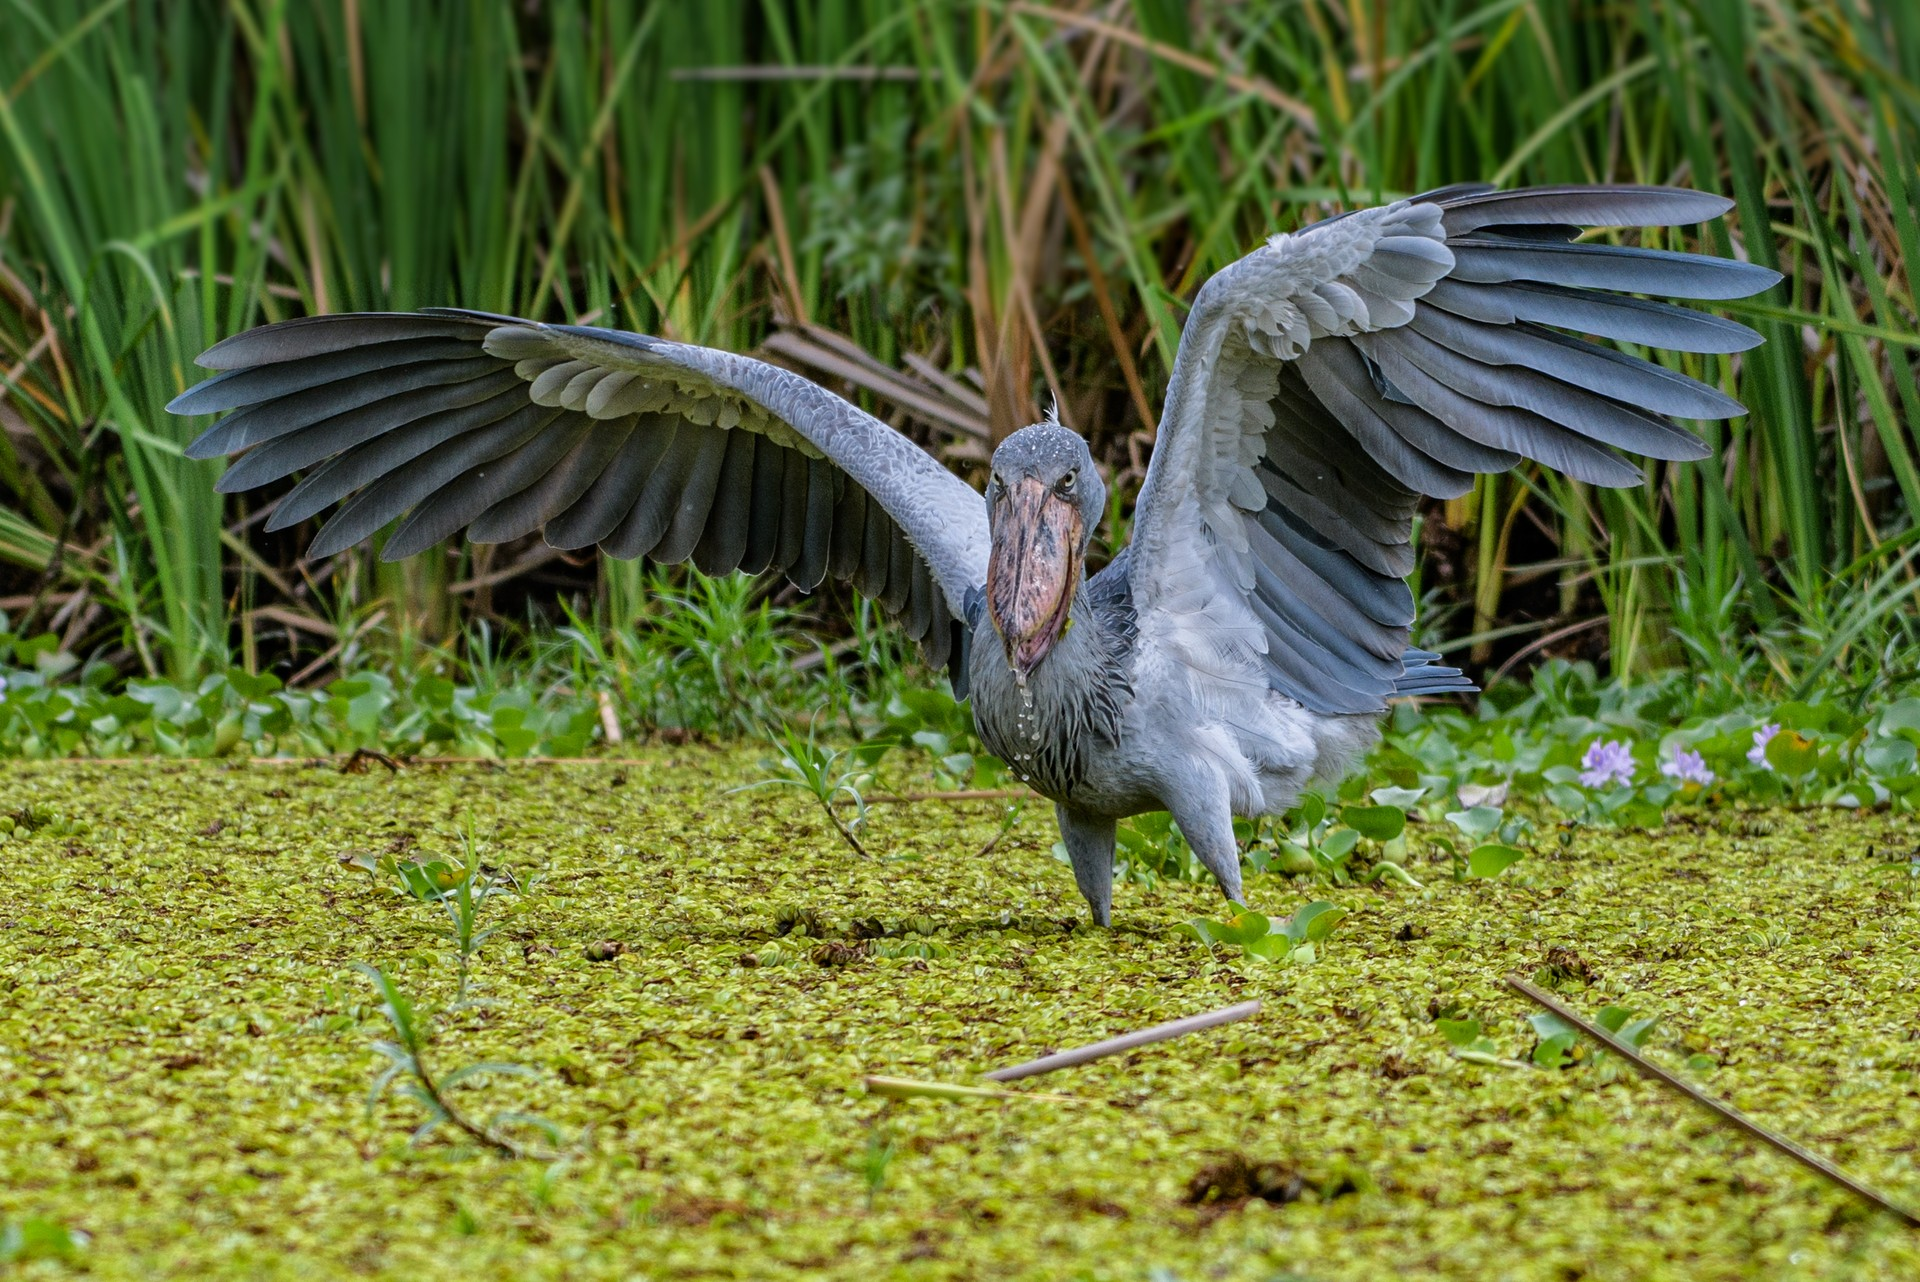 Shoebill stork in Mabamba swamp, Uganda